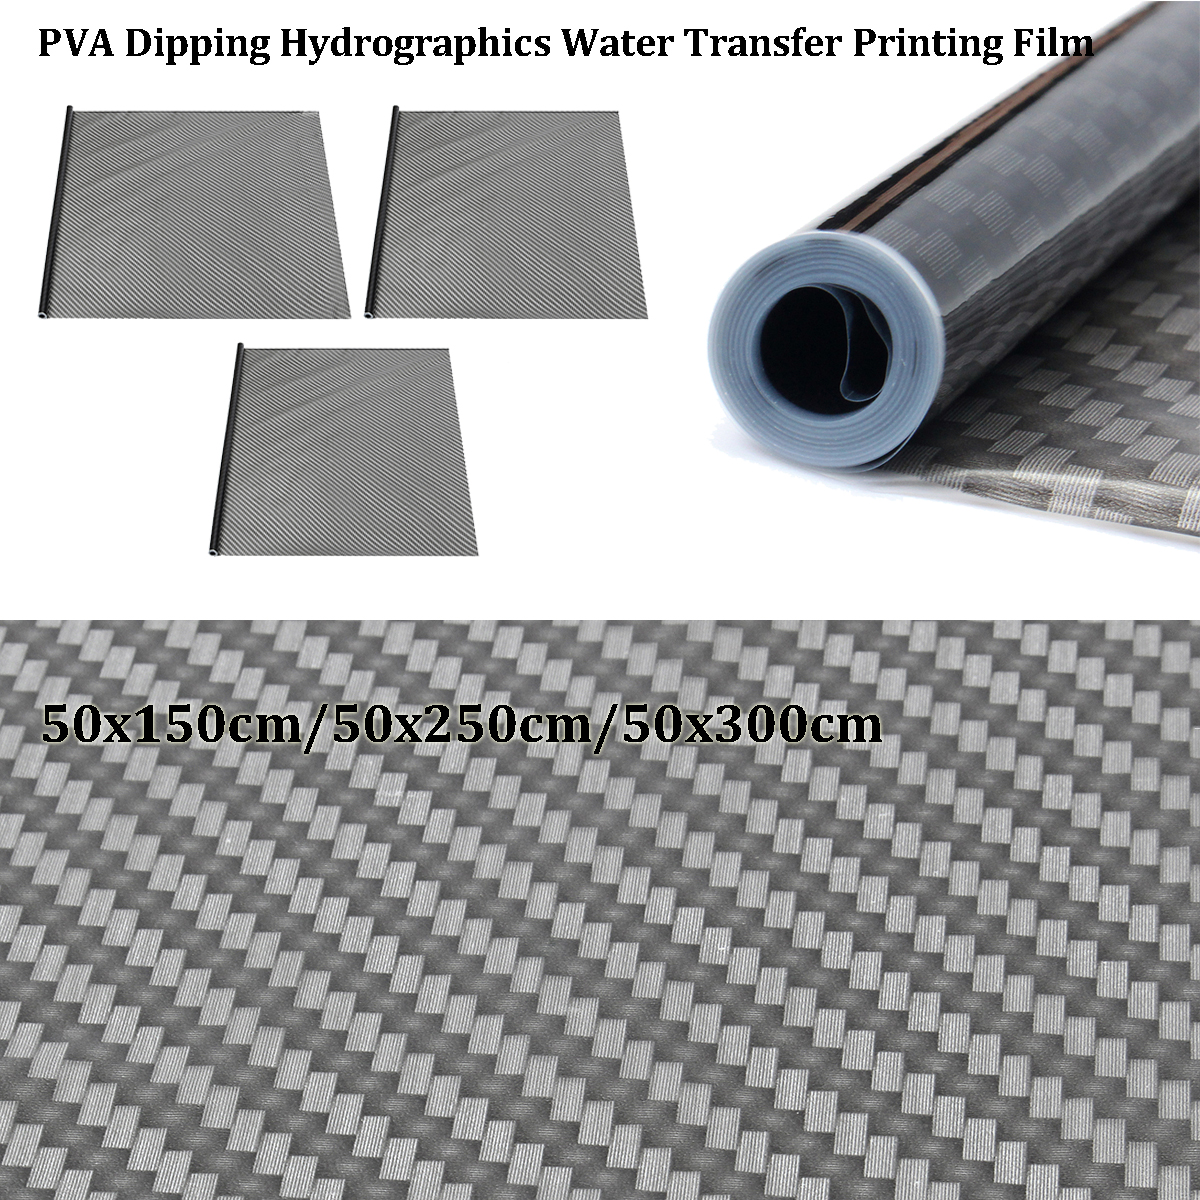 Water Transfer Printing Film Hydrographic Film Hydro Dip Carbon Fiber